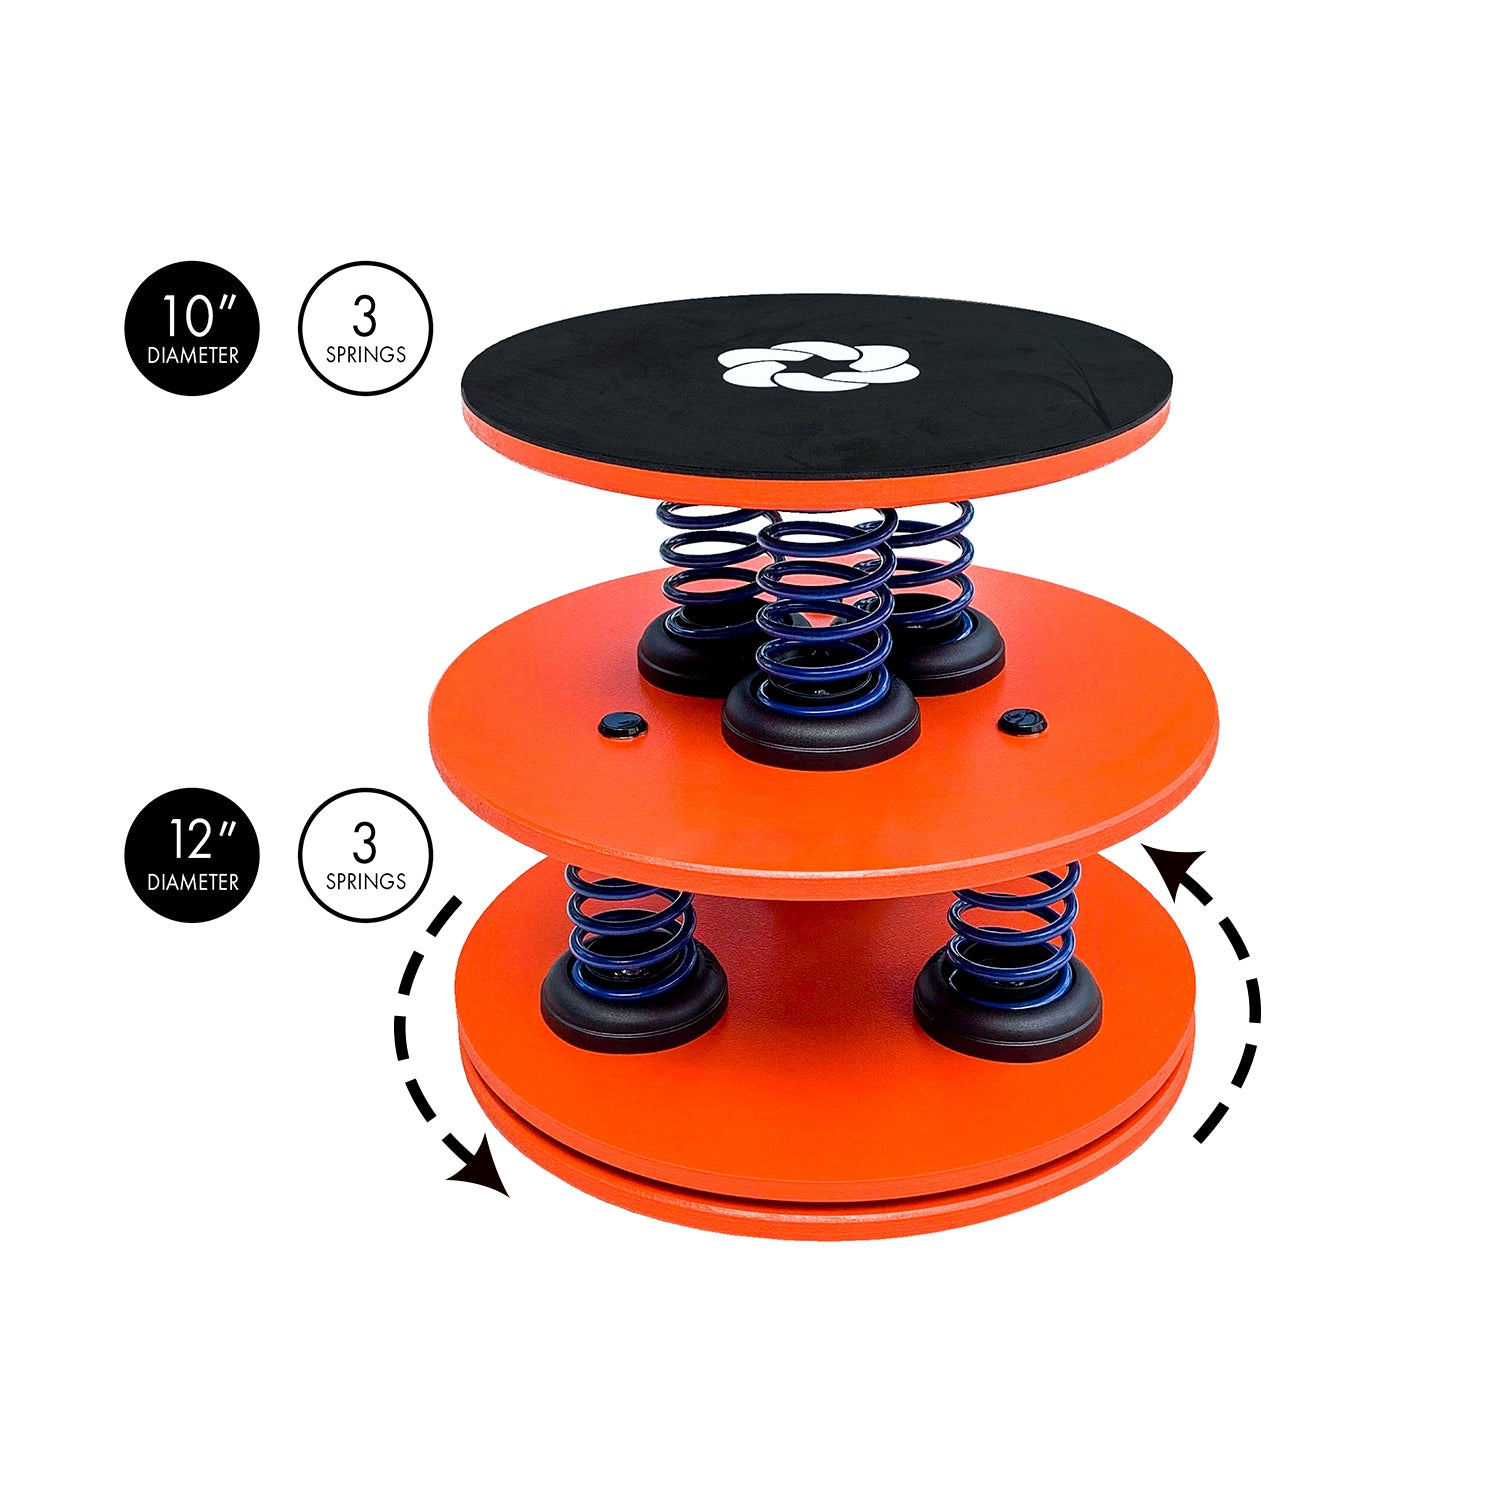 SpringCore Balance Duo Premium Level 4 - Limit 130 pounds